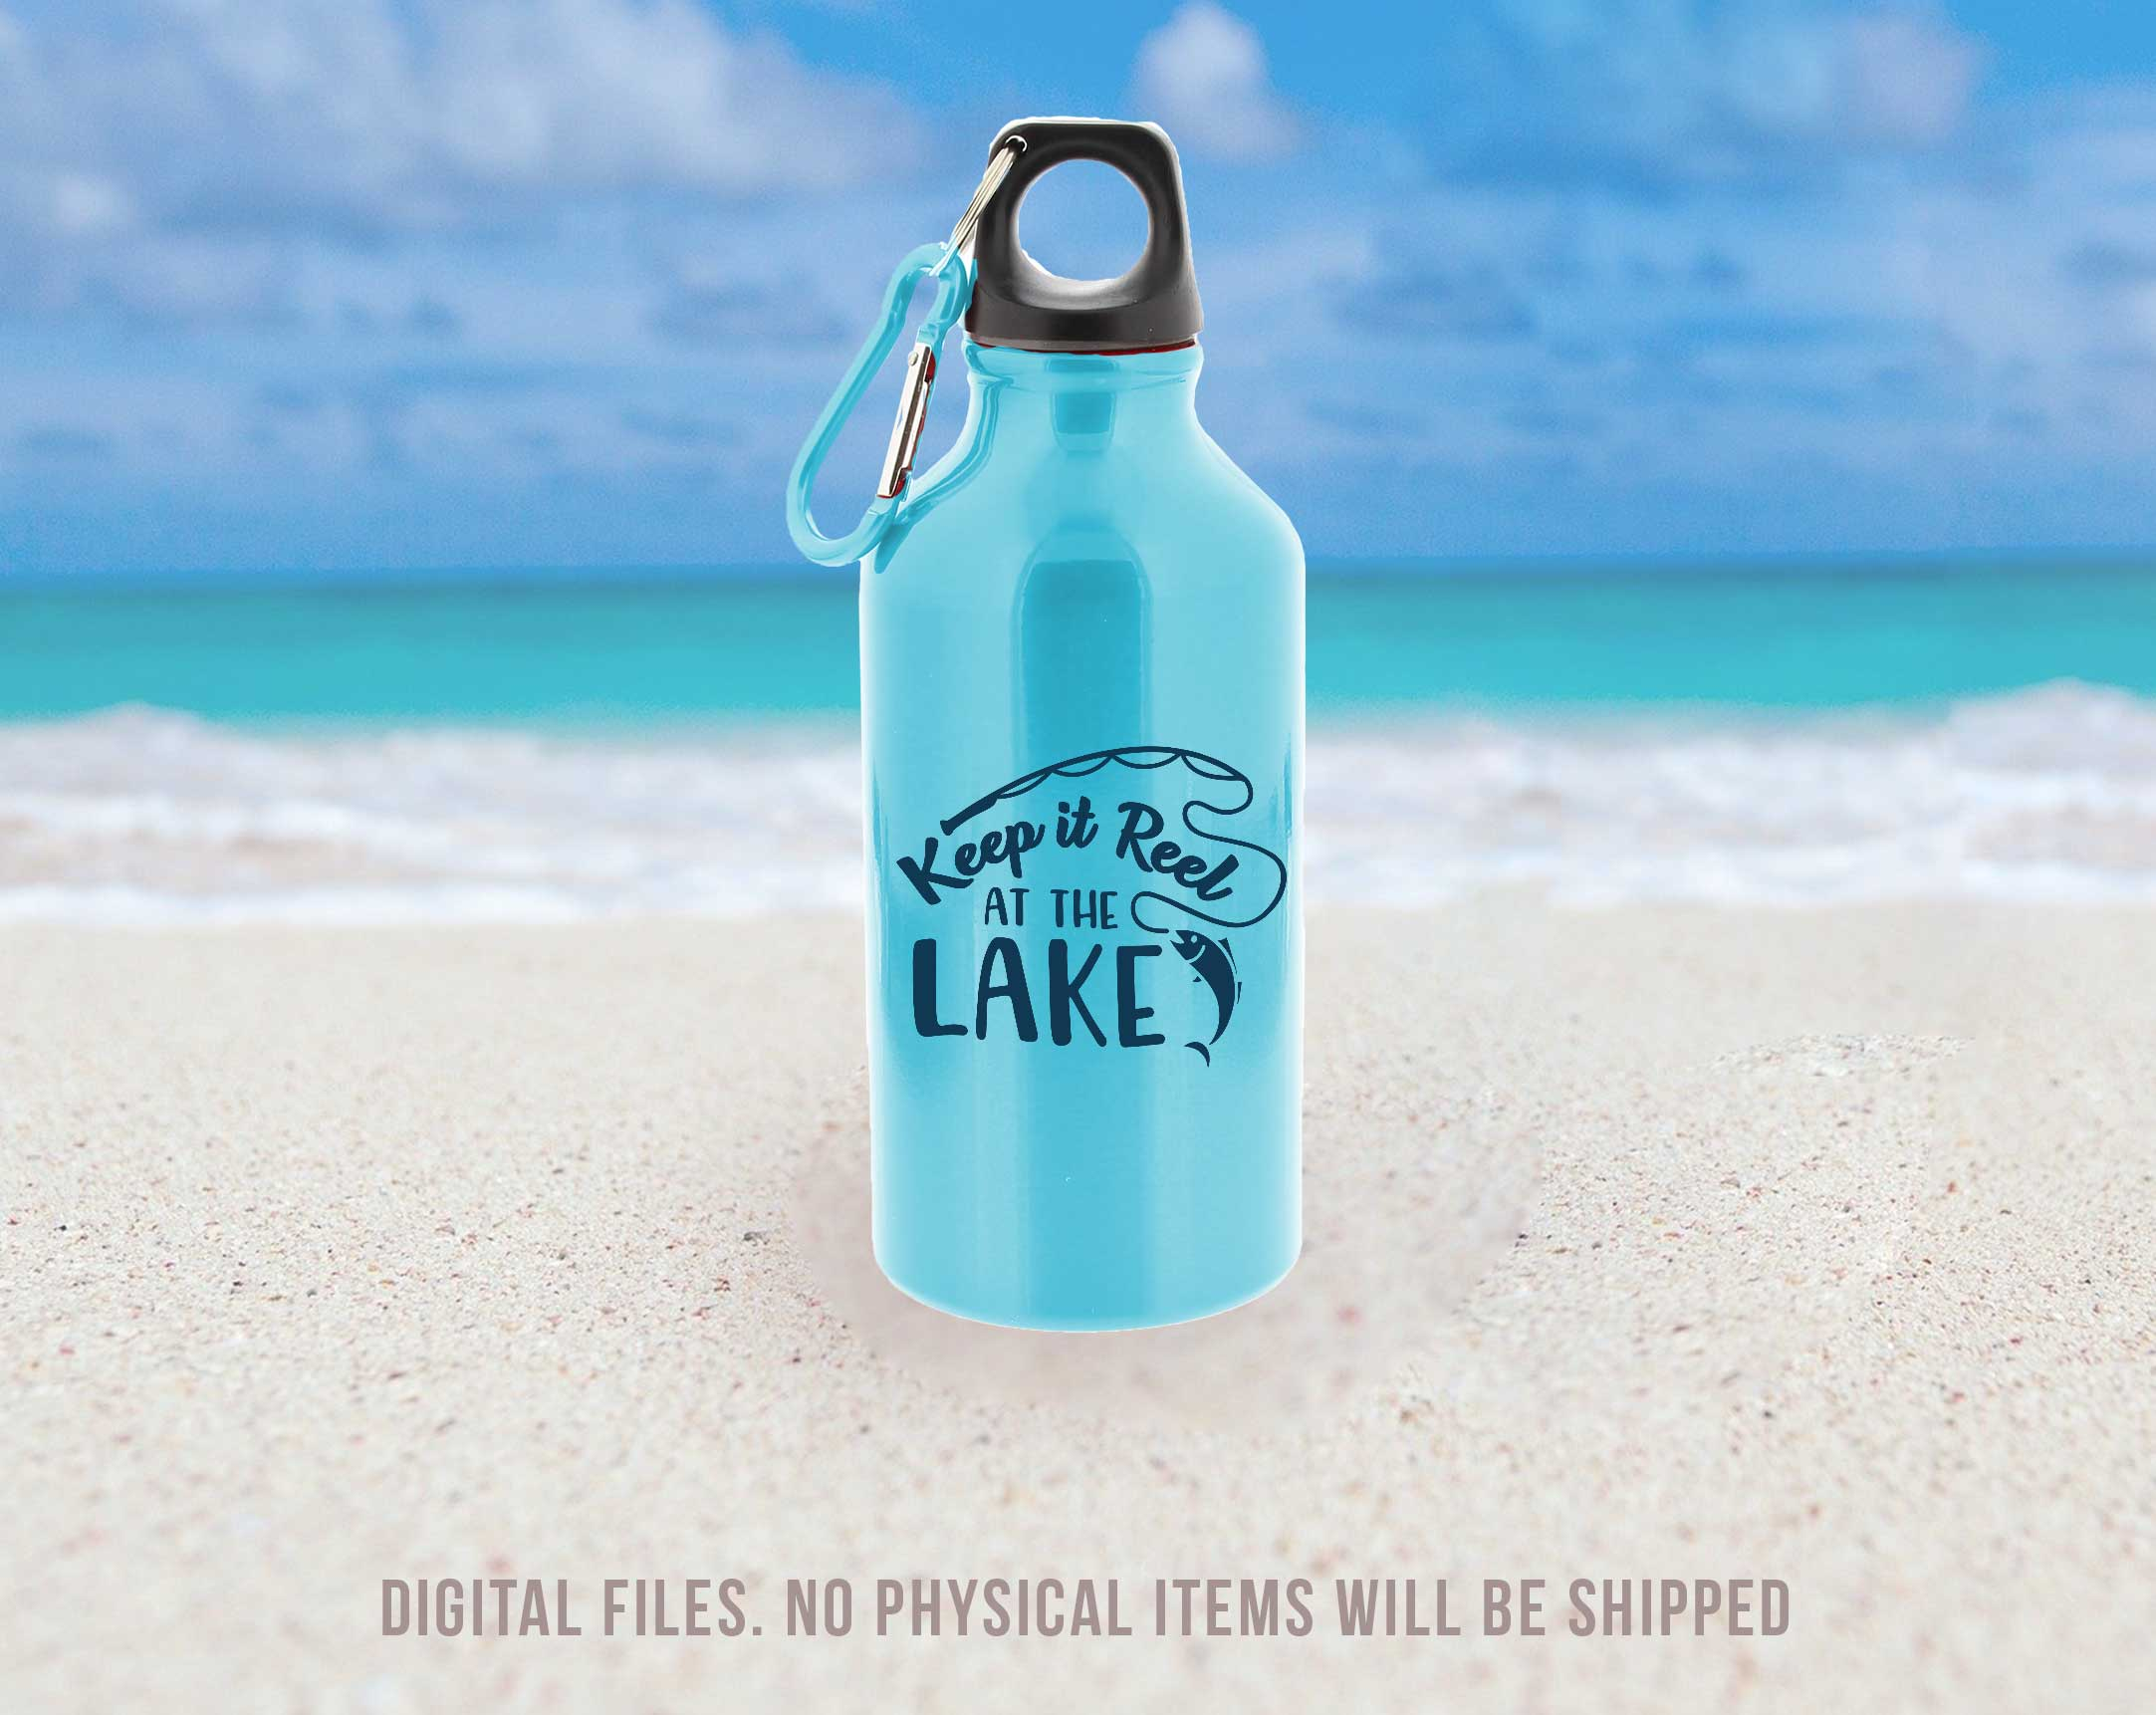 Lake Svg Bundle, Waves PNG, Anchor Svg, Sun Svg, Nautical Svg, Mountain Lake Svg, Fishing Svg, Summer Svg, Outdoor Svg, Vacation Svg, Lake House Svg, Lake Sayings Svg, Lake Quotes, Lake Shirt Svg, Lake Svg File, Lake Signs Svg, Tent Svg, Lake Bum Svg,-by Illustrator Guru